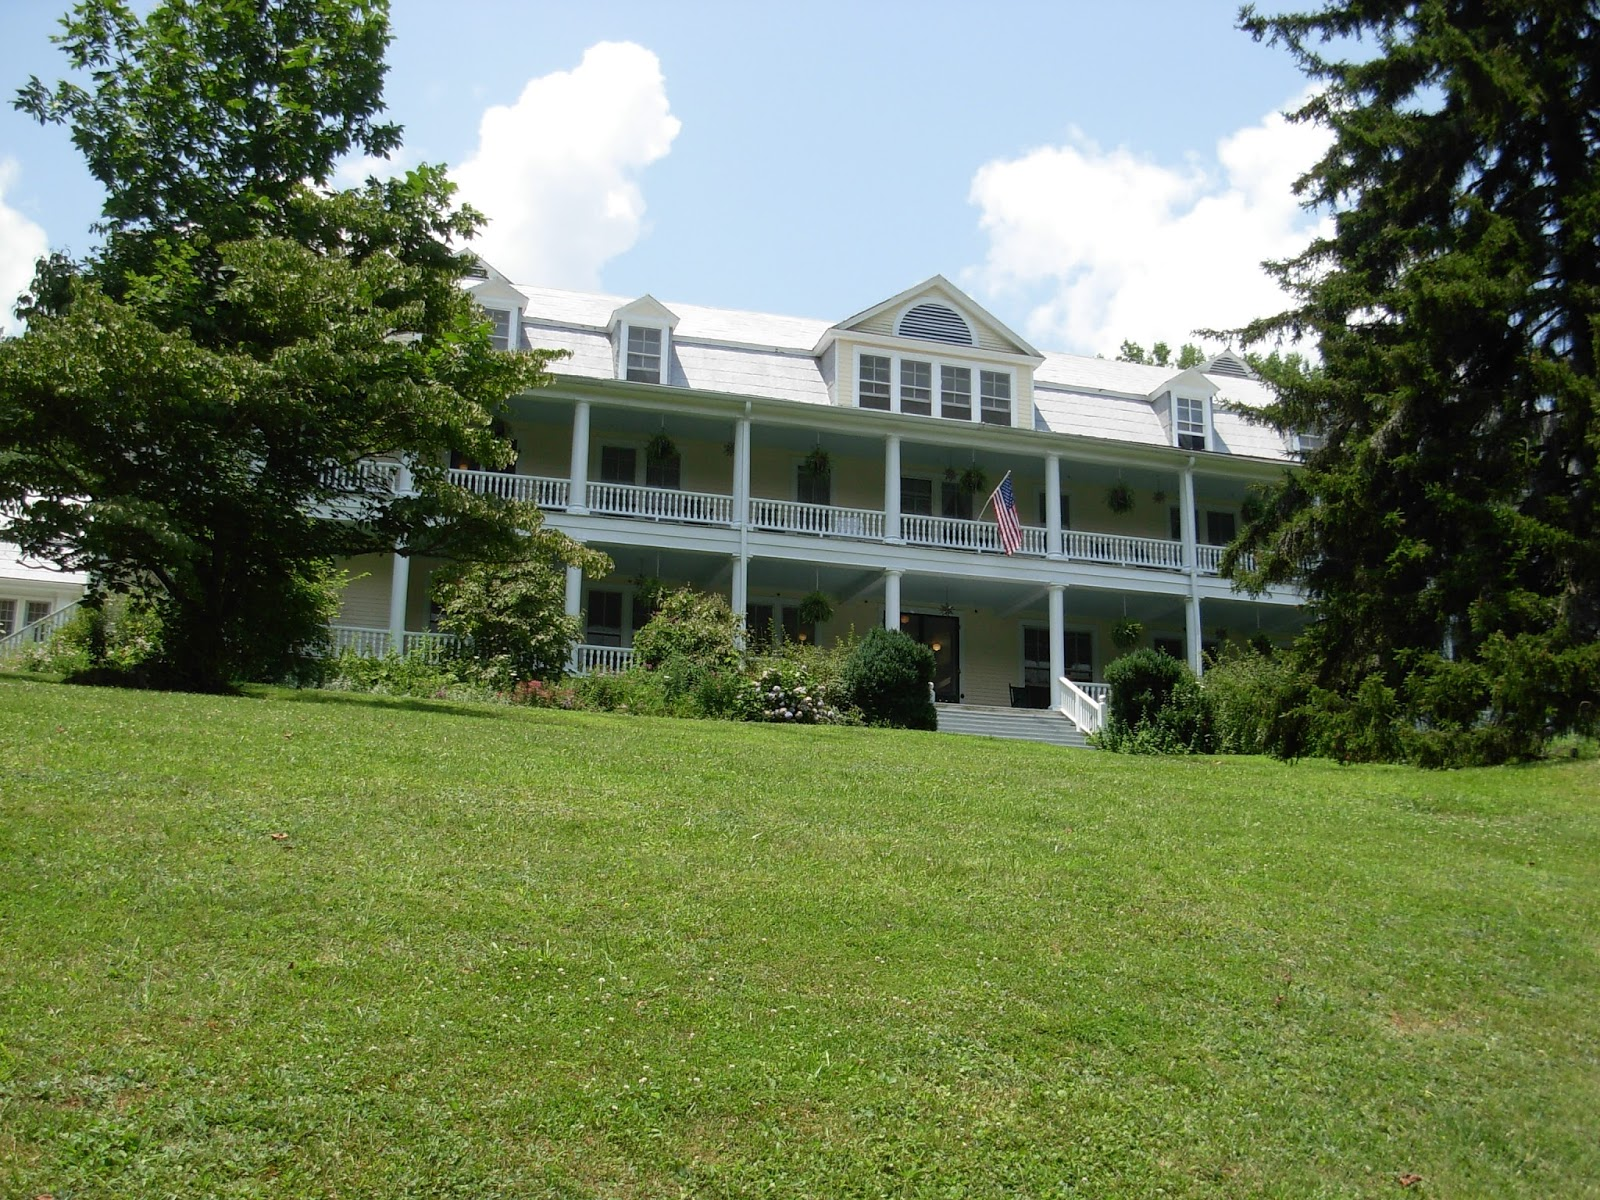 Balsam Mountain Inn Haunted Balsam Mountain Inn 2012